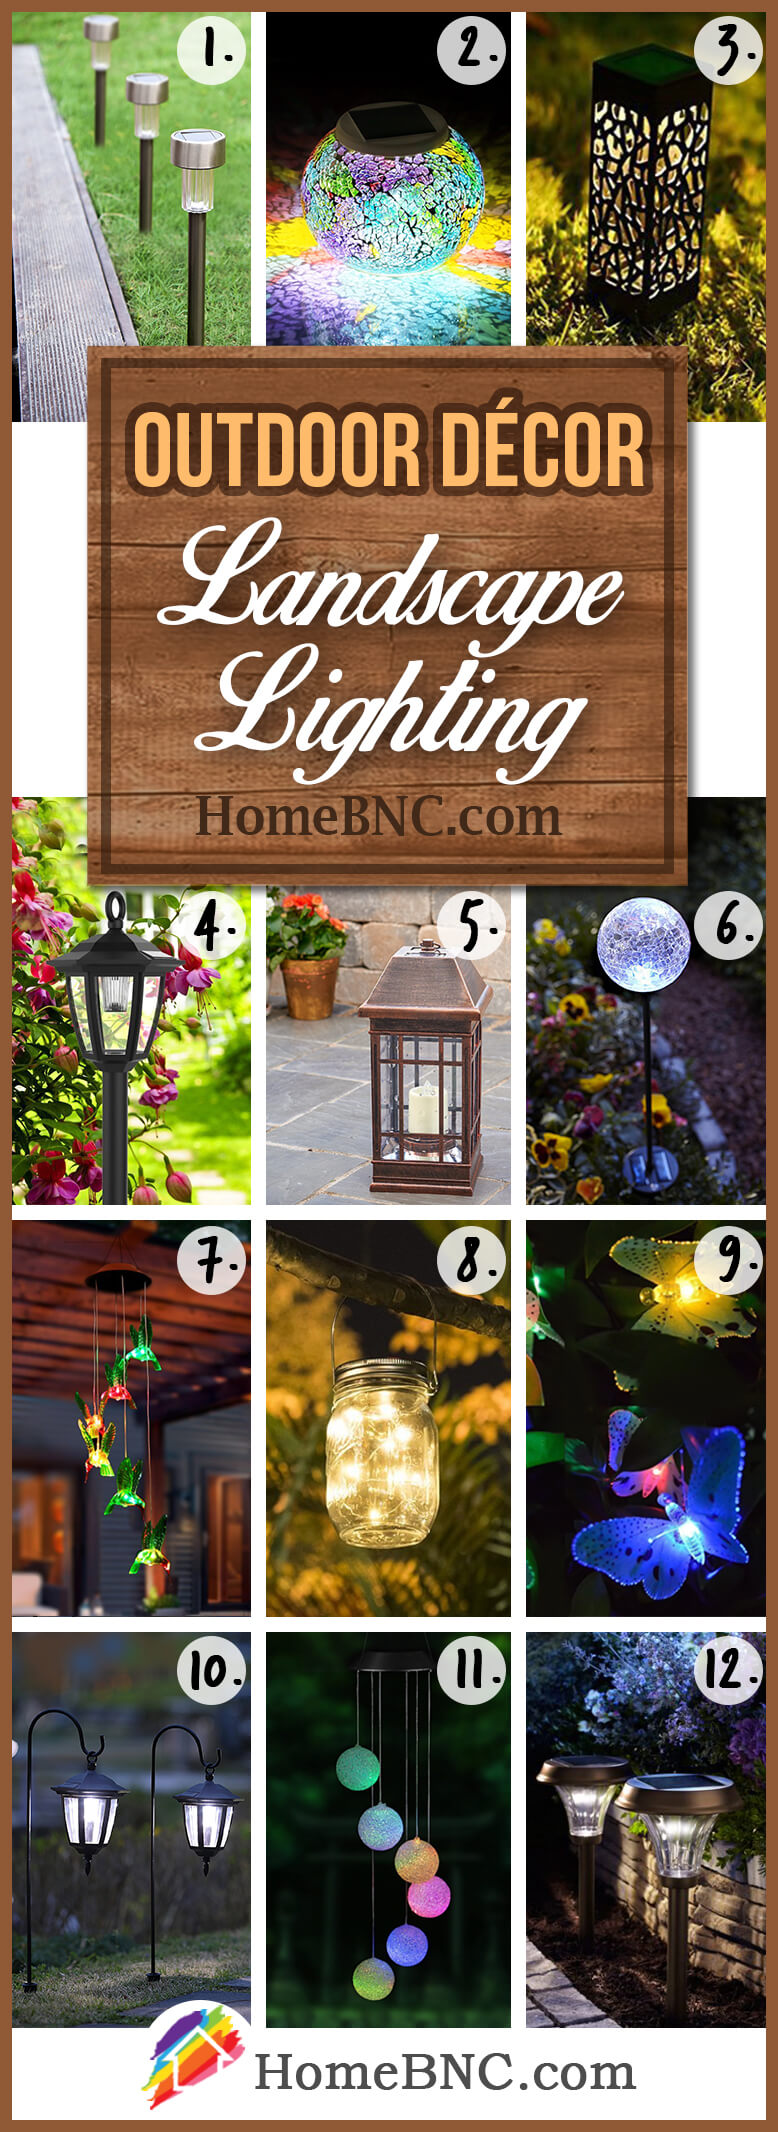 Landscape Lighting Outdoor Decoration Ideas